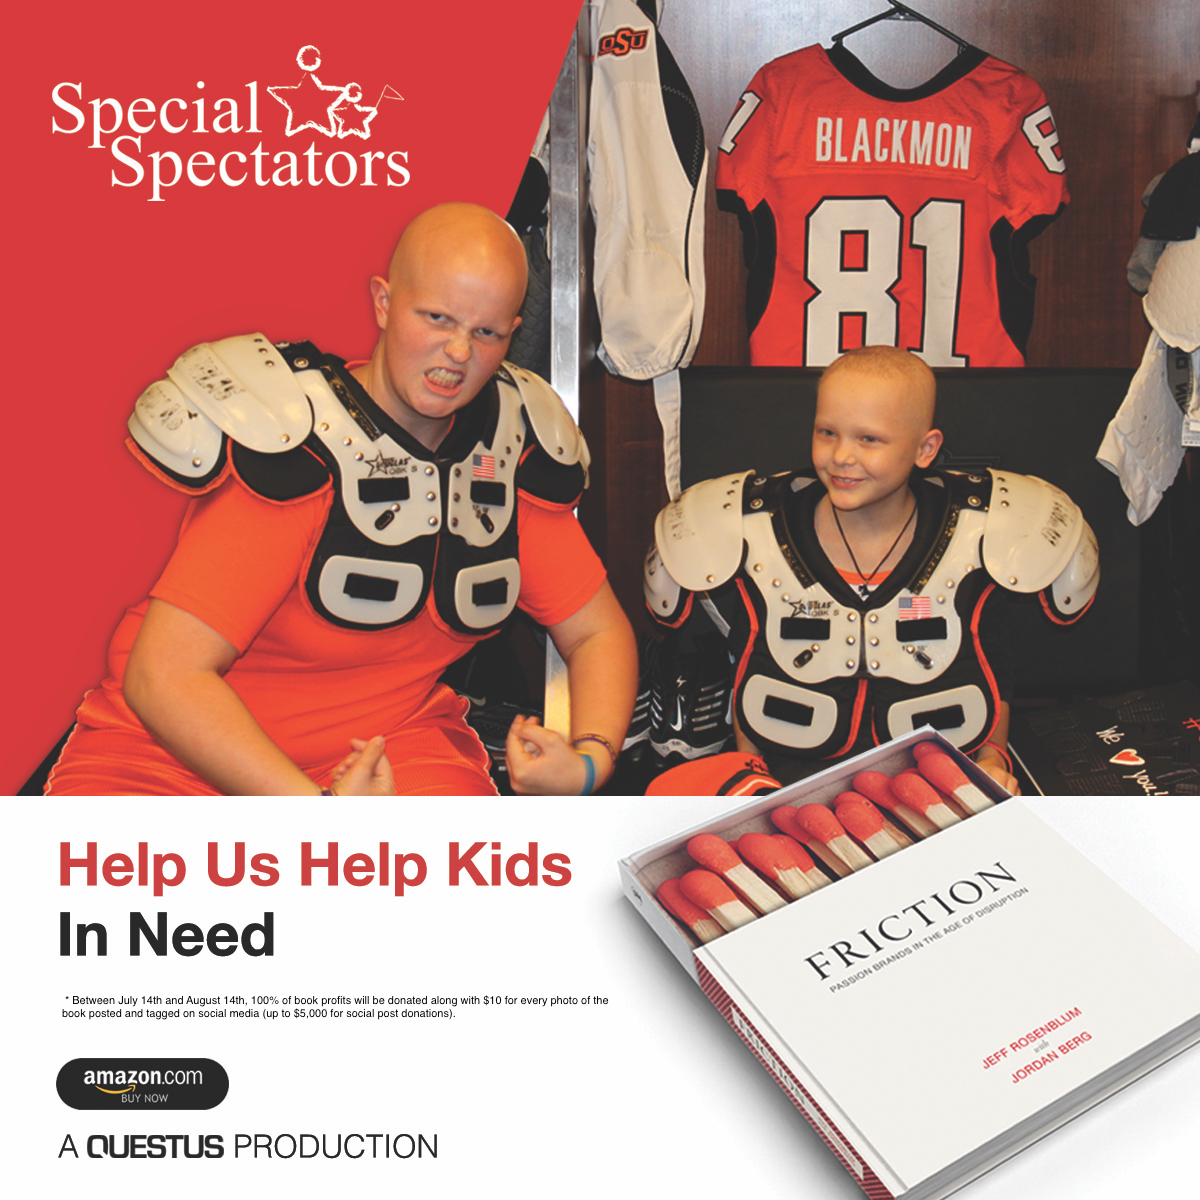 Help Us Help Kids In Need - We are celebrating the release of Friction by partnering with our favorite children's charity, Special Spectators, which provides incredible sports experiences for children with serious illnesses. For the next month, we will donate 100% of author proceeds from Friction as well as $10 for every picture of the book posted on social media. Please join the celebration and help us help kids in need.